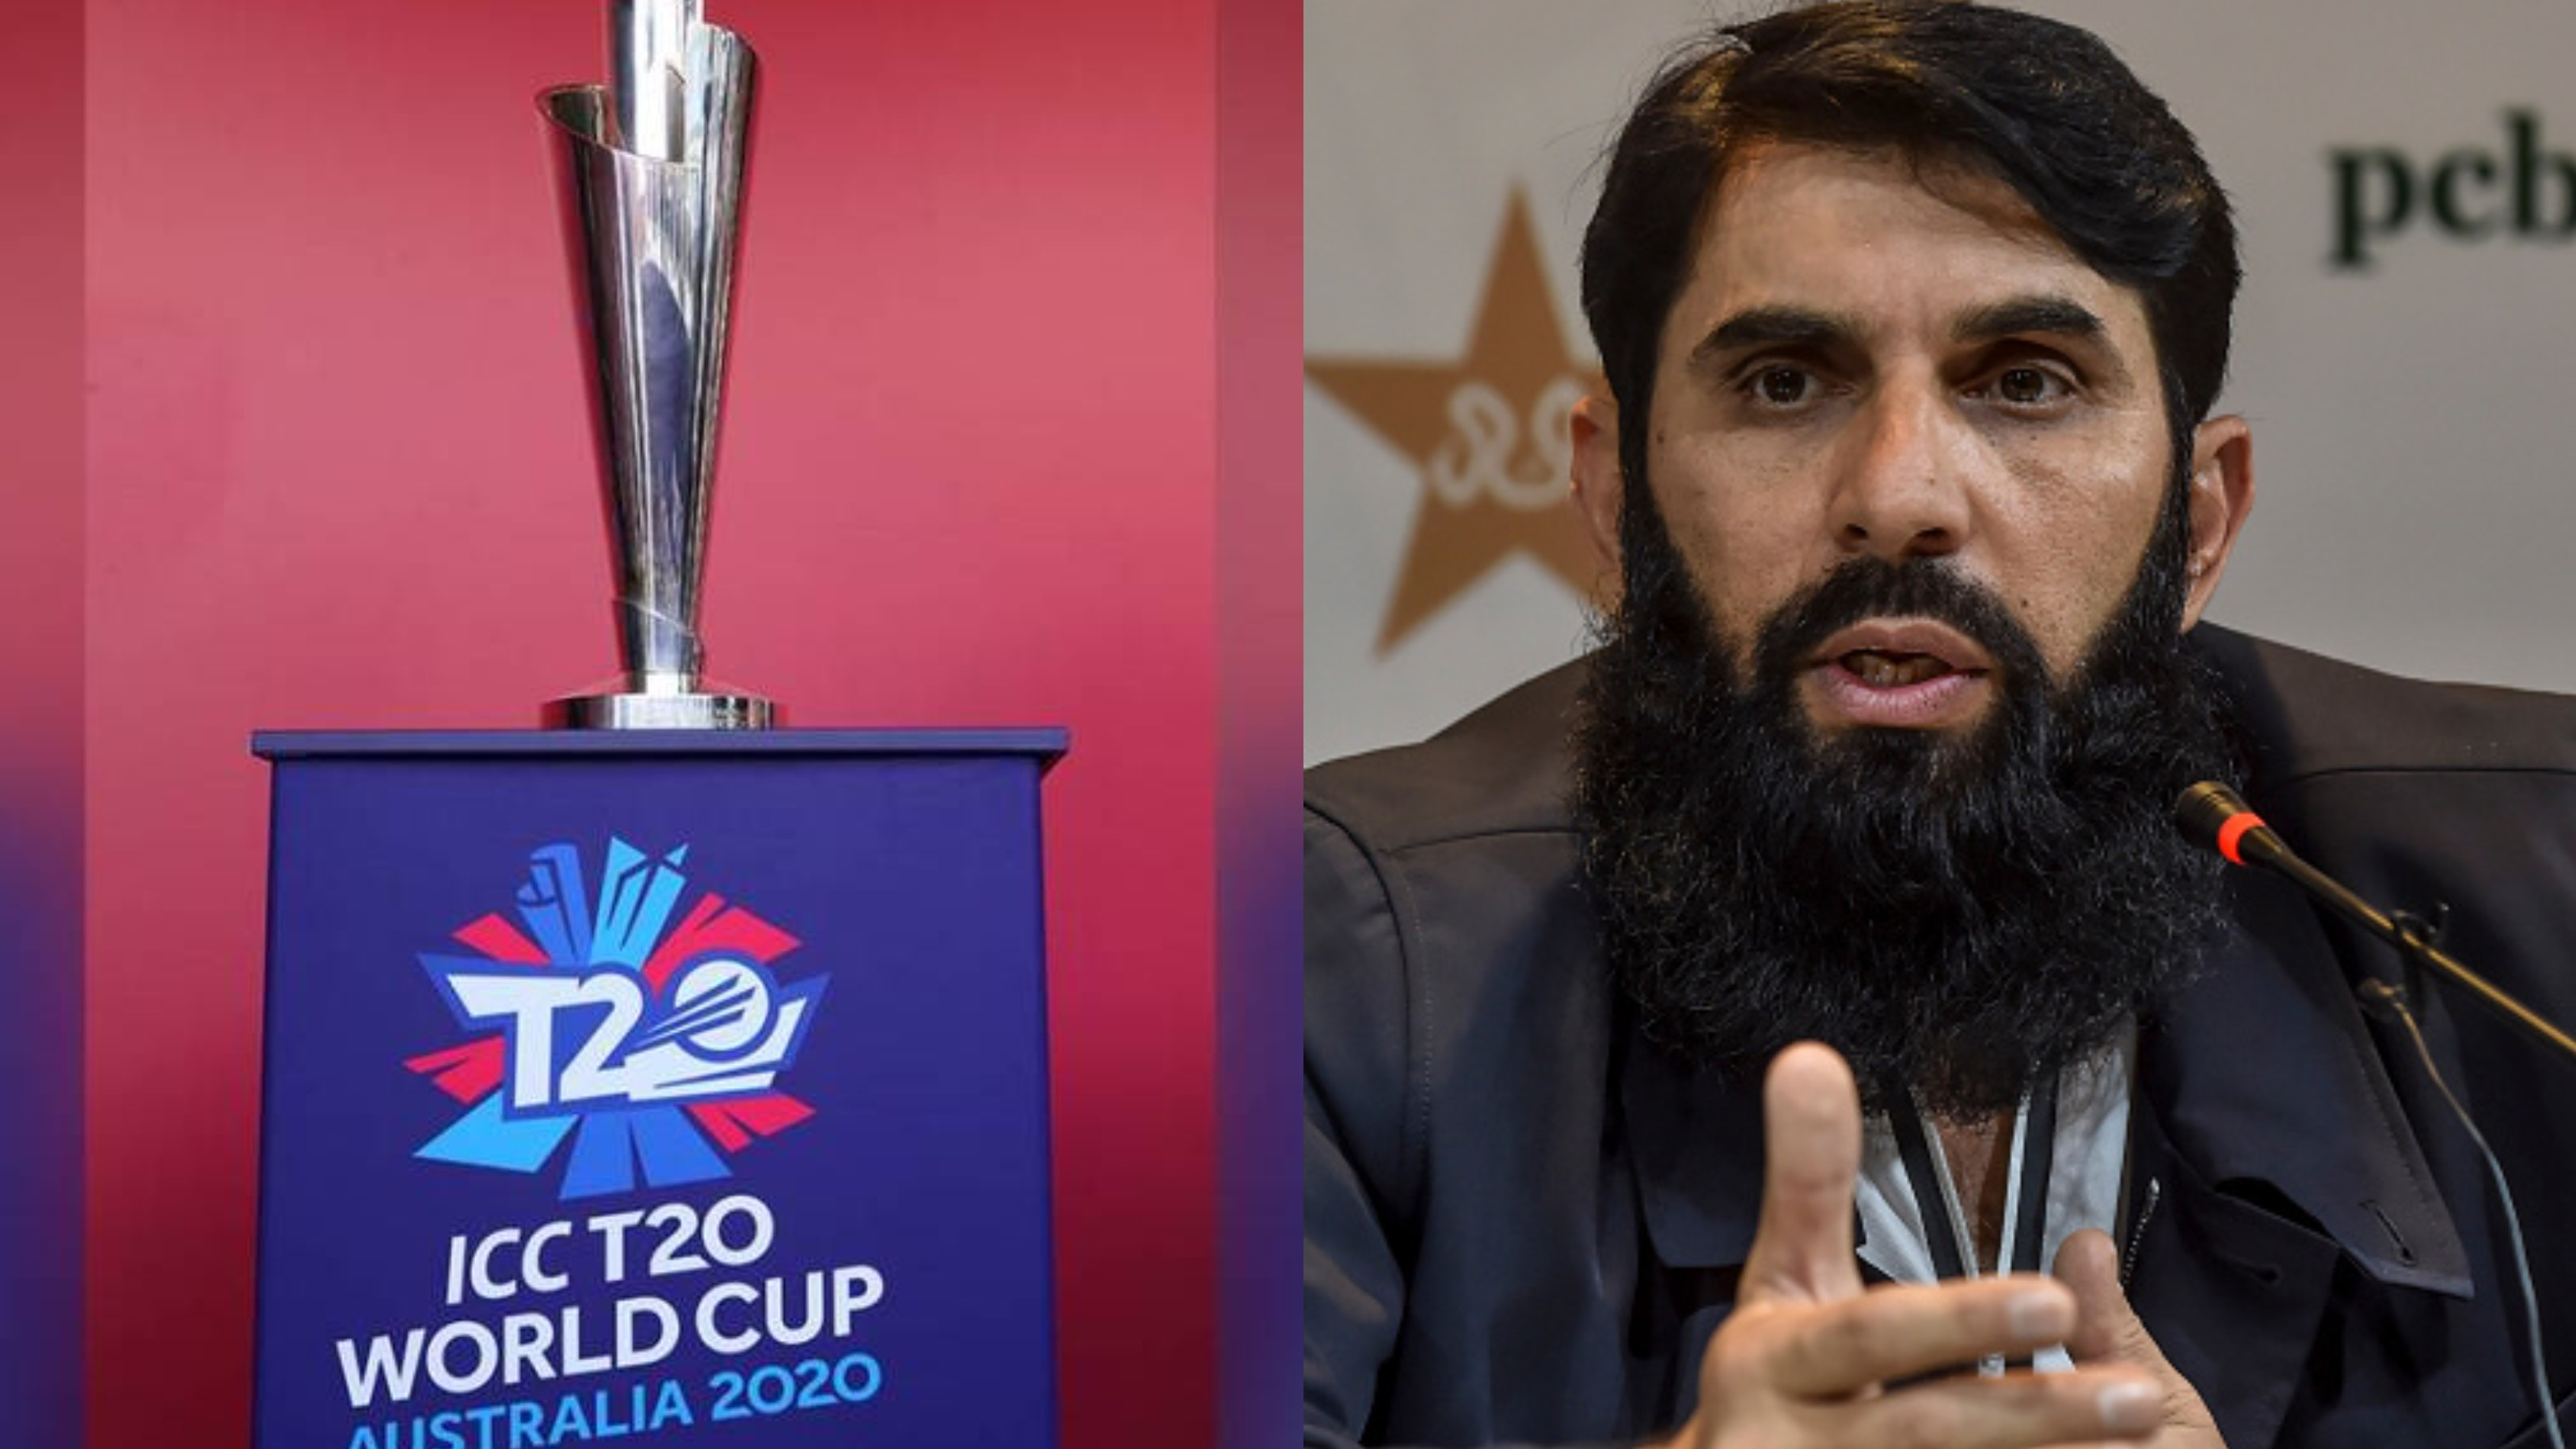 Everyone wants to see the T20 World Cup 2020; ICC must give it a try, says Misbah-ul-Haq